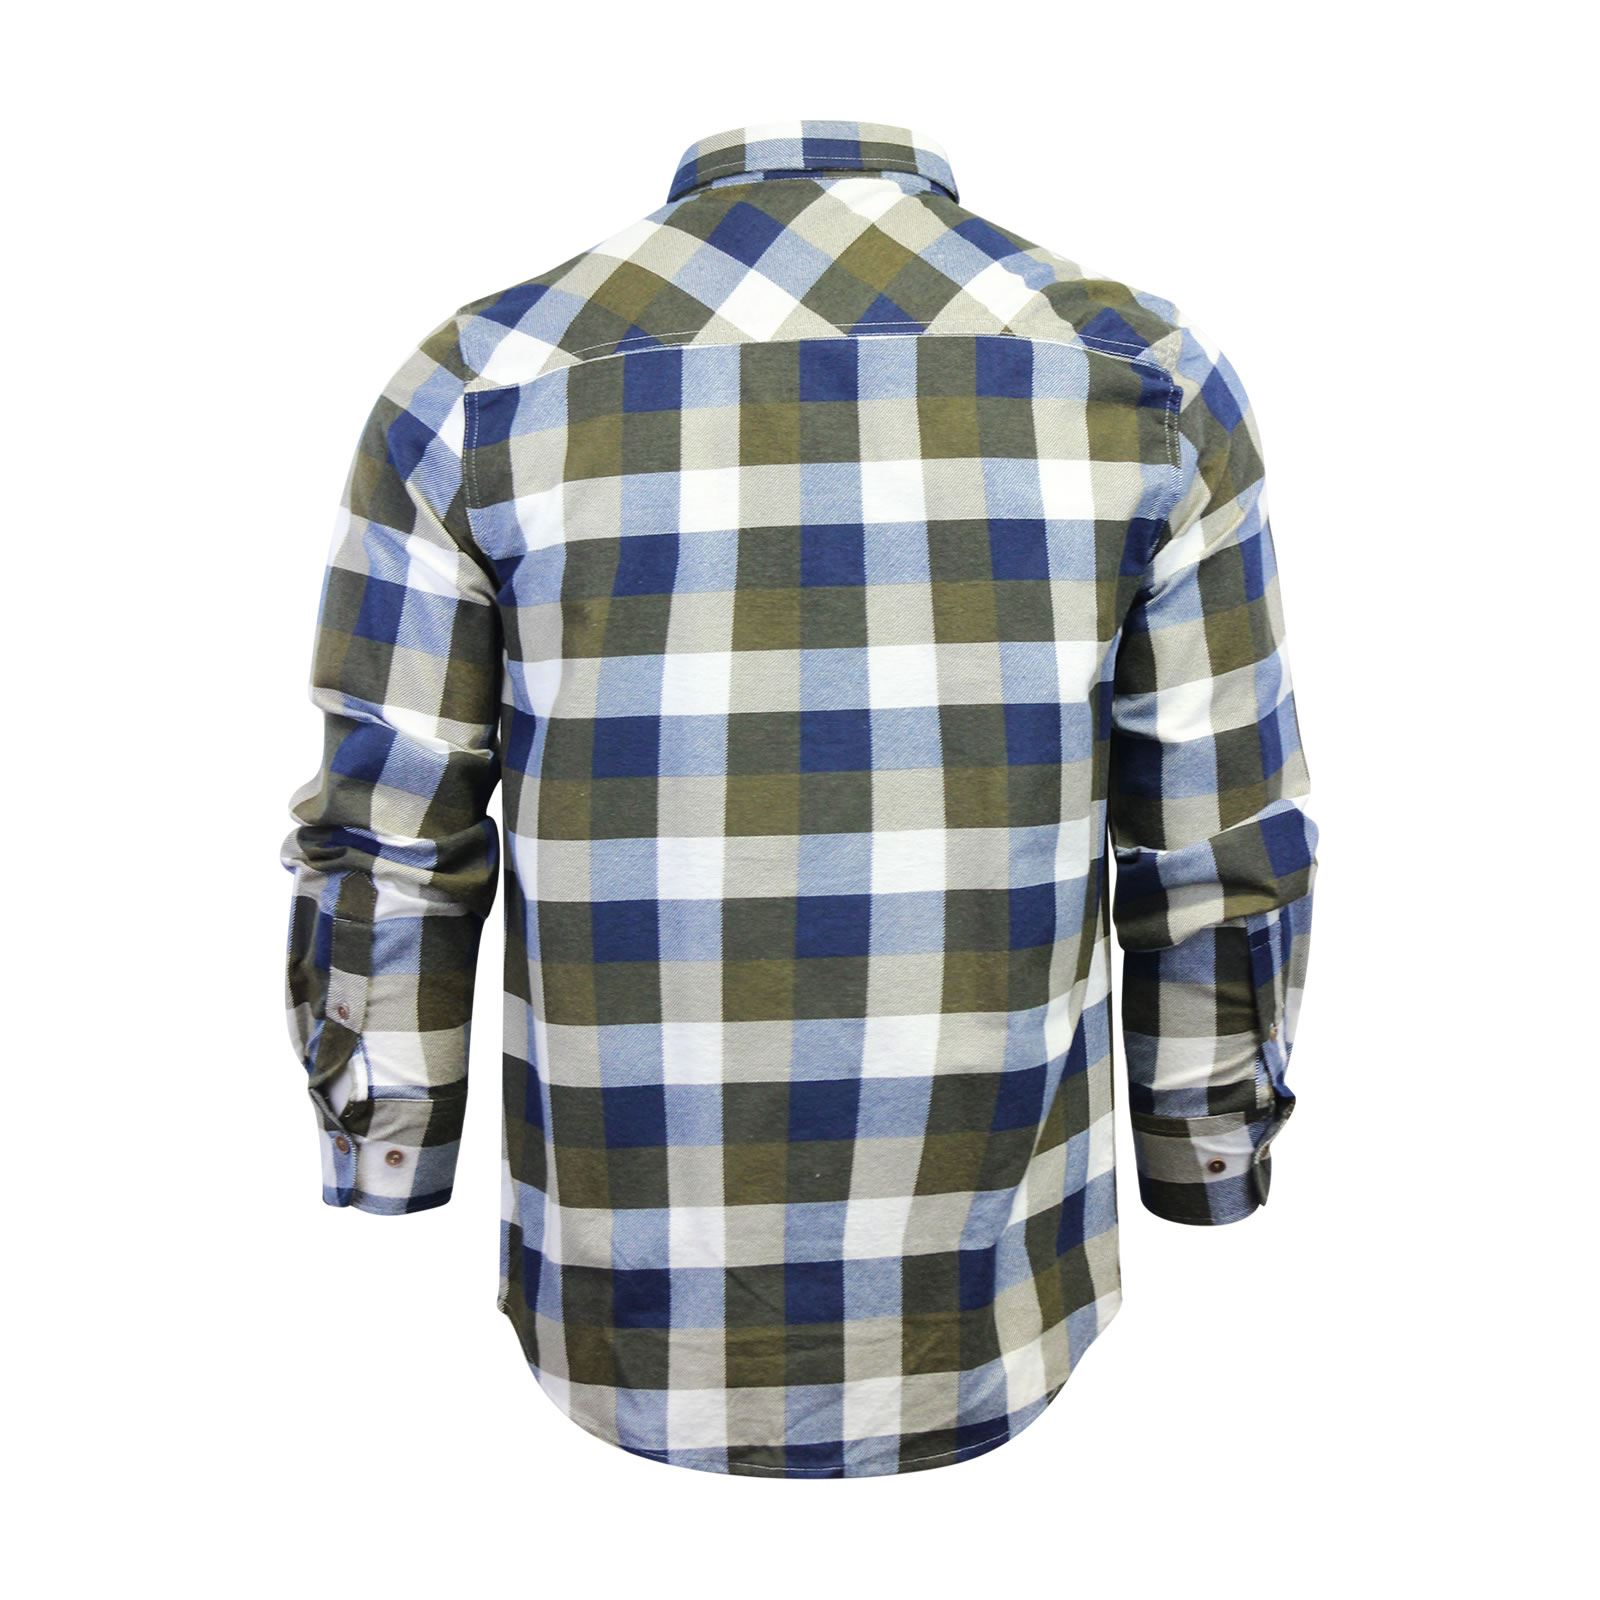 Mens-Check-Shirt-Brave-Soul-Flannel-Brushed-Cotton-Long-Sleeve-Casual-Top thumbnail 113